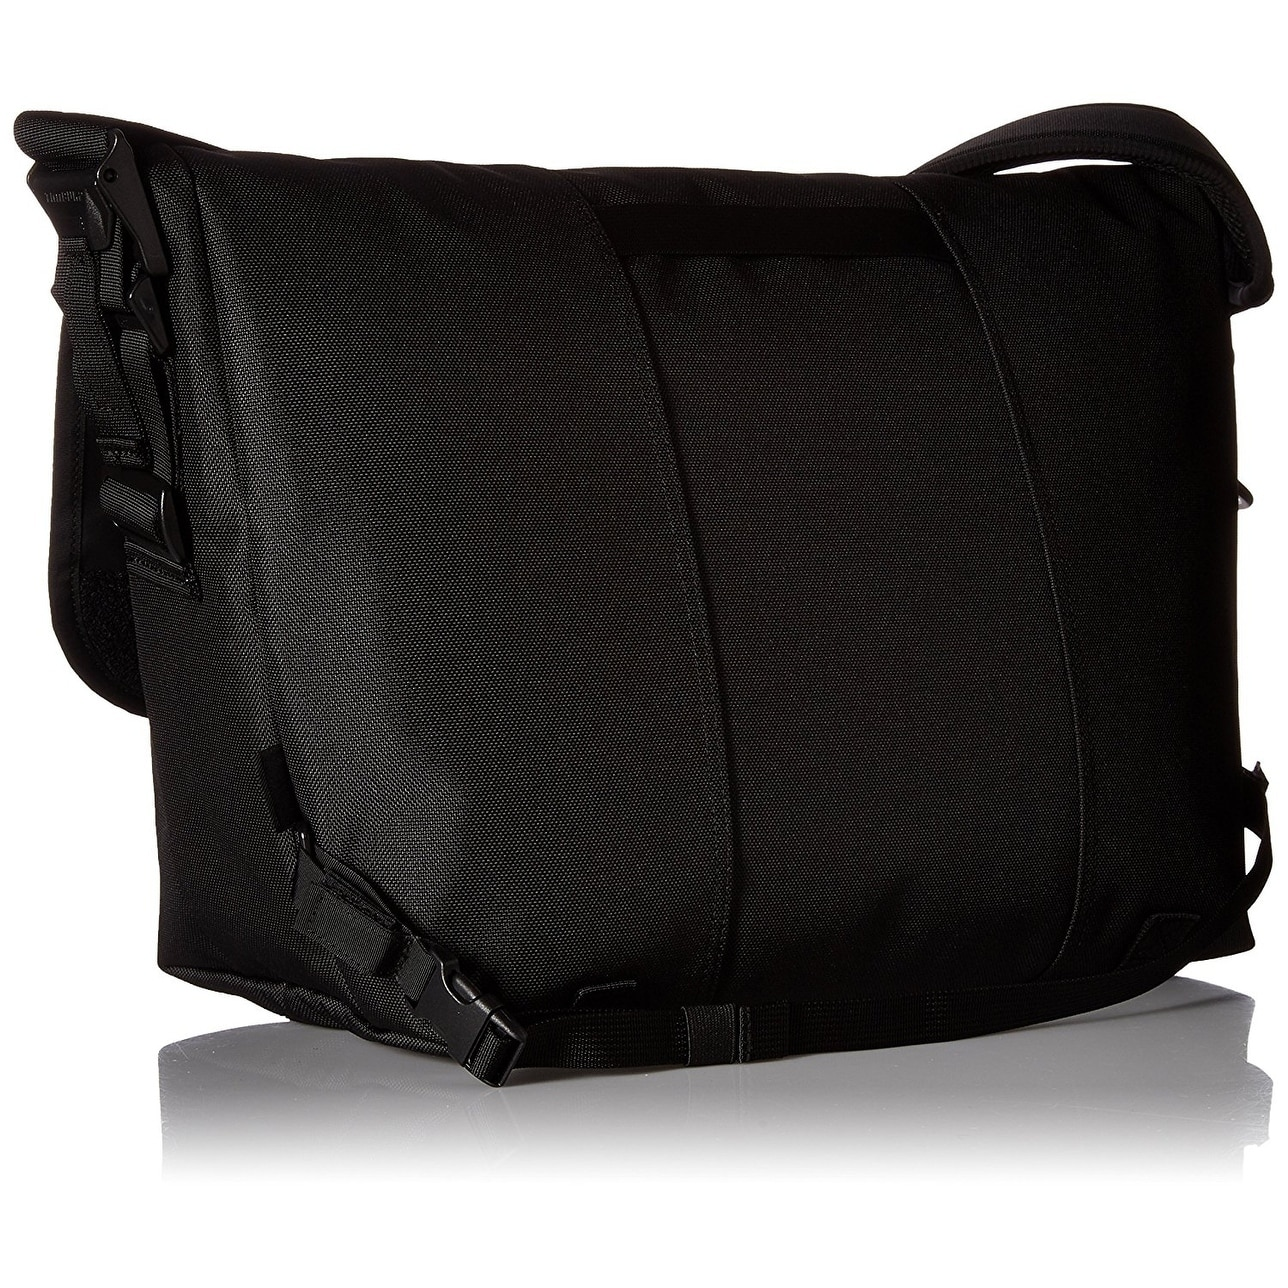 Shop Timbuk2 Classic Messenger Bag Jet Black  Medium - Free Shipping Today  - Overstock - 22797447 e4decfff96452